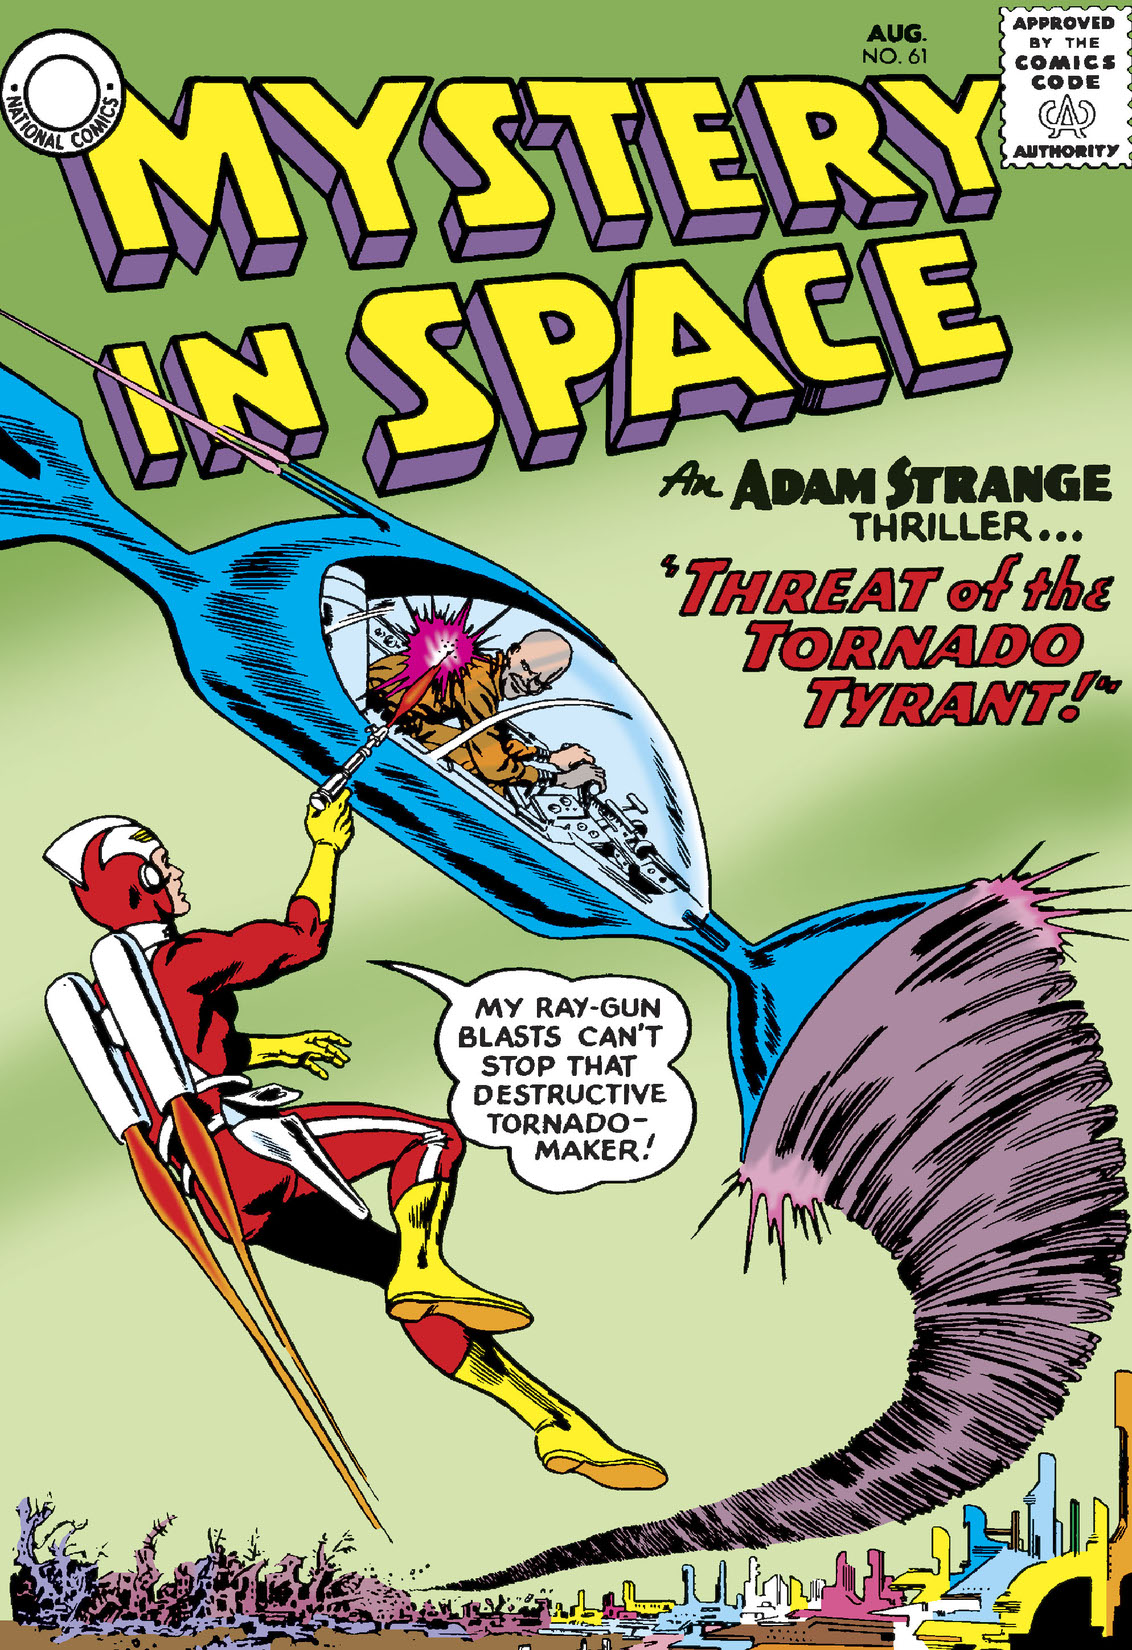 Read Mystery in Space (1951-) #61 on DC Universe